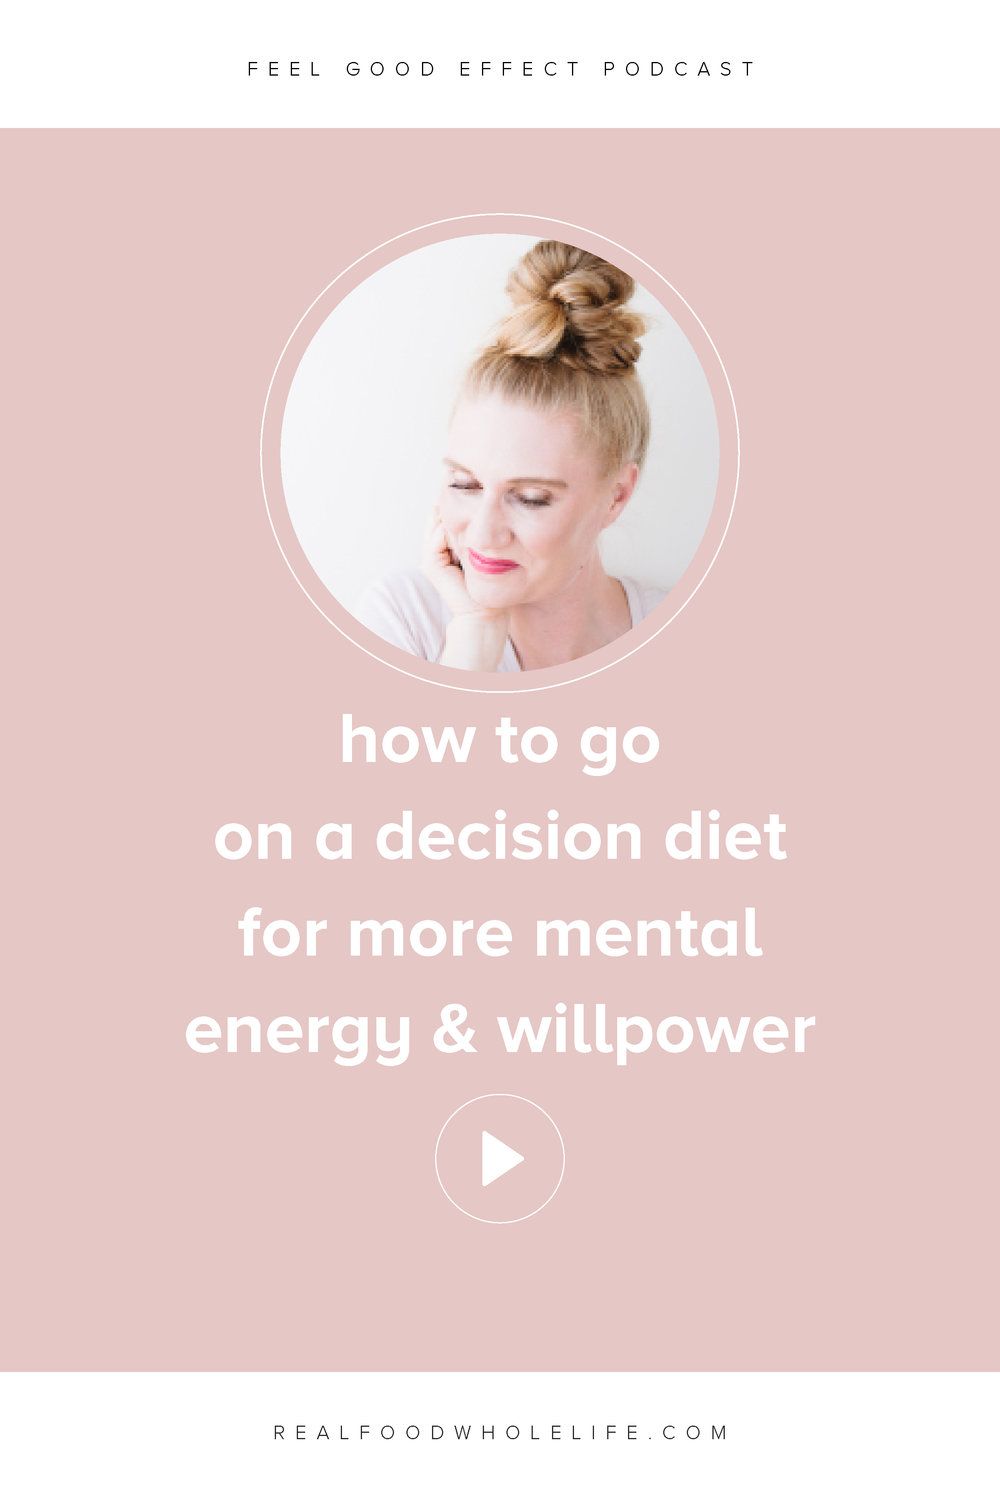 How to Go on a Decision Diet for More Mental Energy & Willpower